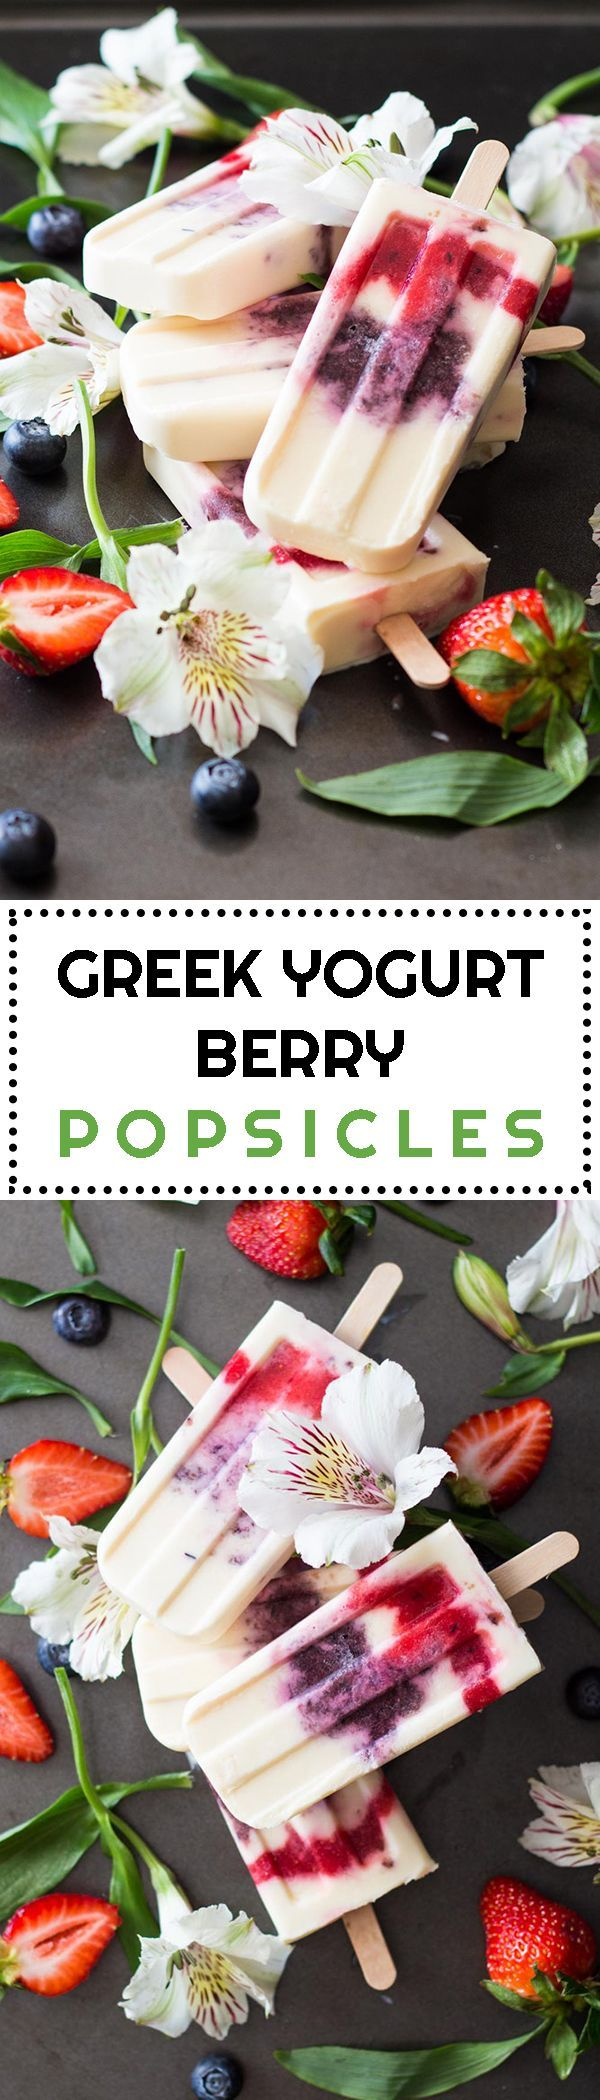 Let the popsicle season begin! Try these Greek Yogurt Berry Popsicles for a healthy spin on our favorite cold dessert without loosing it's magic! YUM!